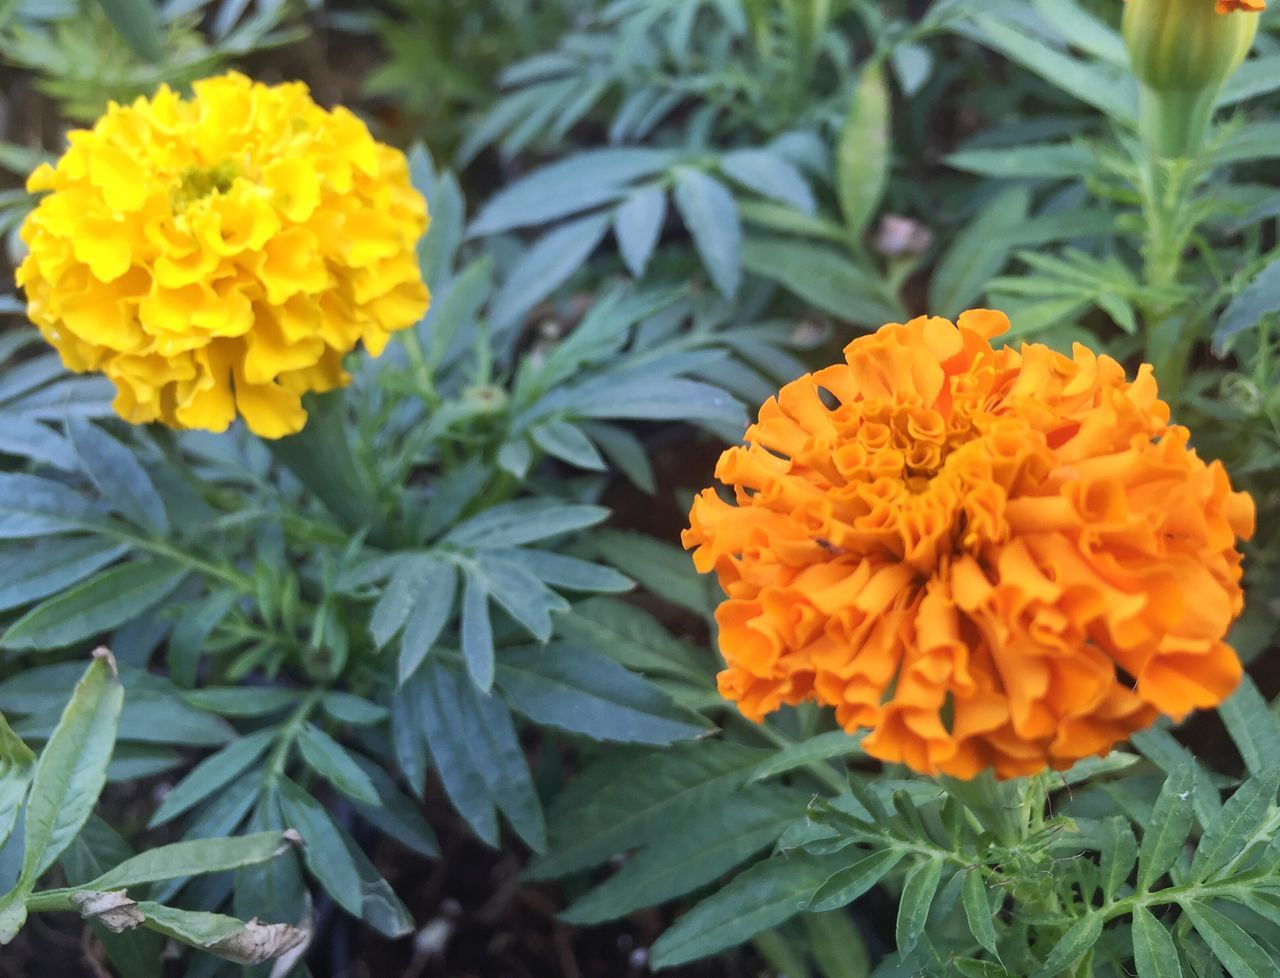 flower, freshness, fragility, beauty in nature, yellow, marigold, orange color, petal, growth, nature, leaf, plant, green color, no people, close-up, flower head, day, outdoors, blooming